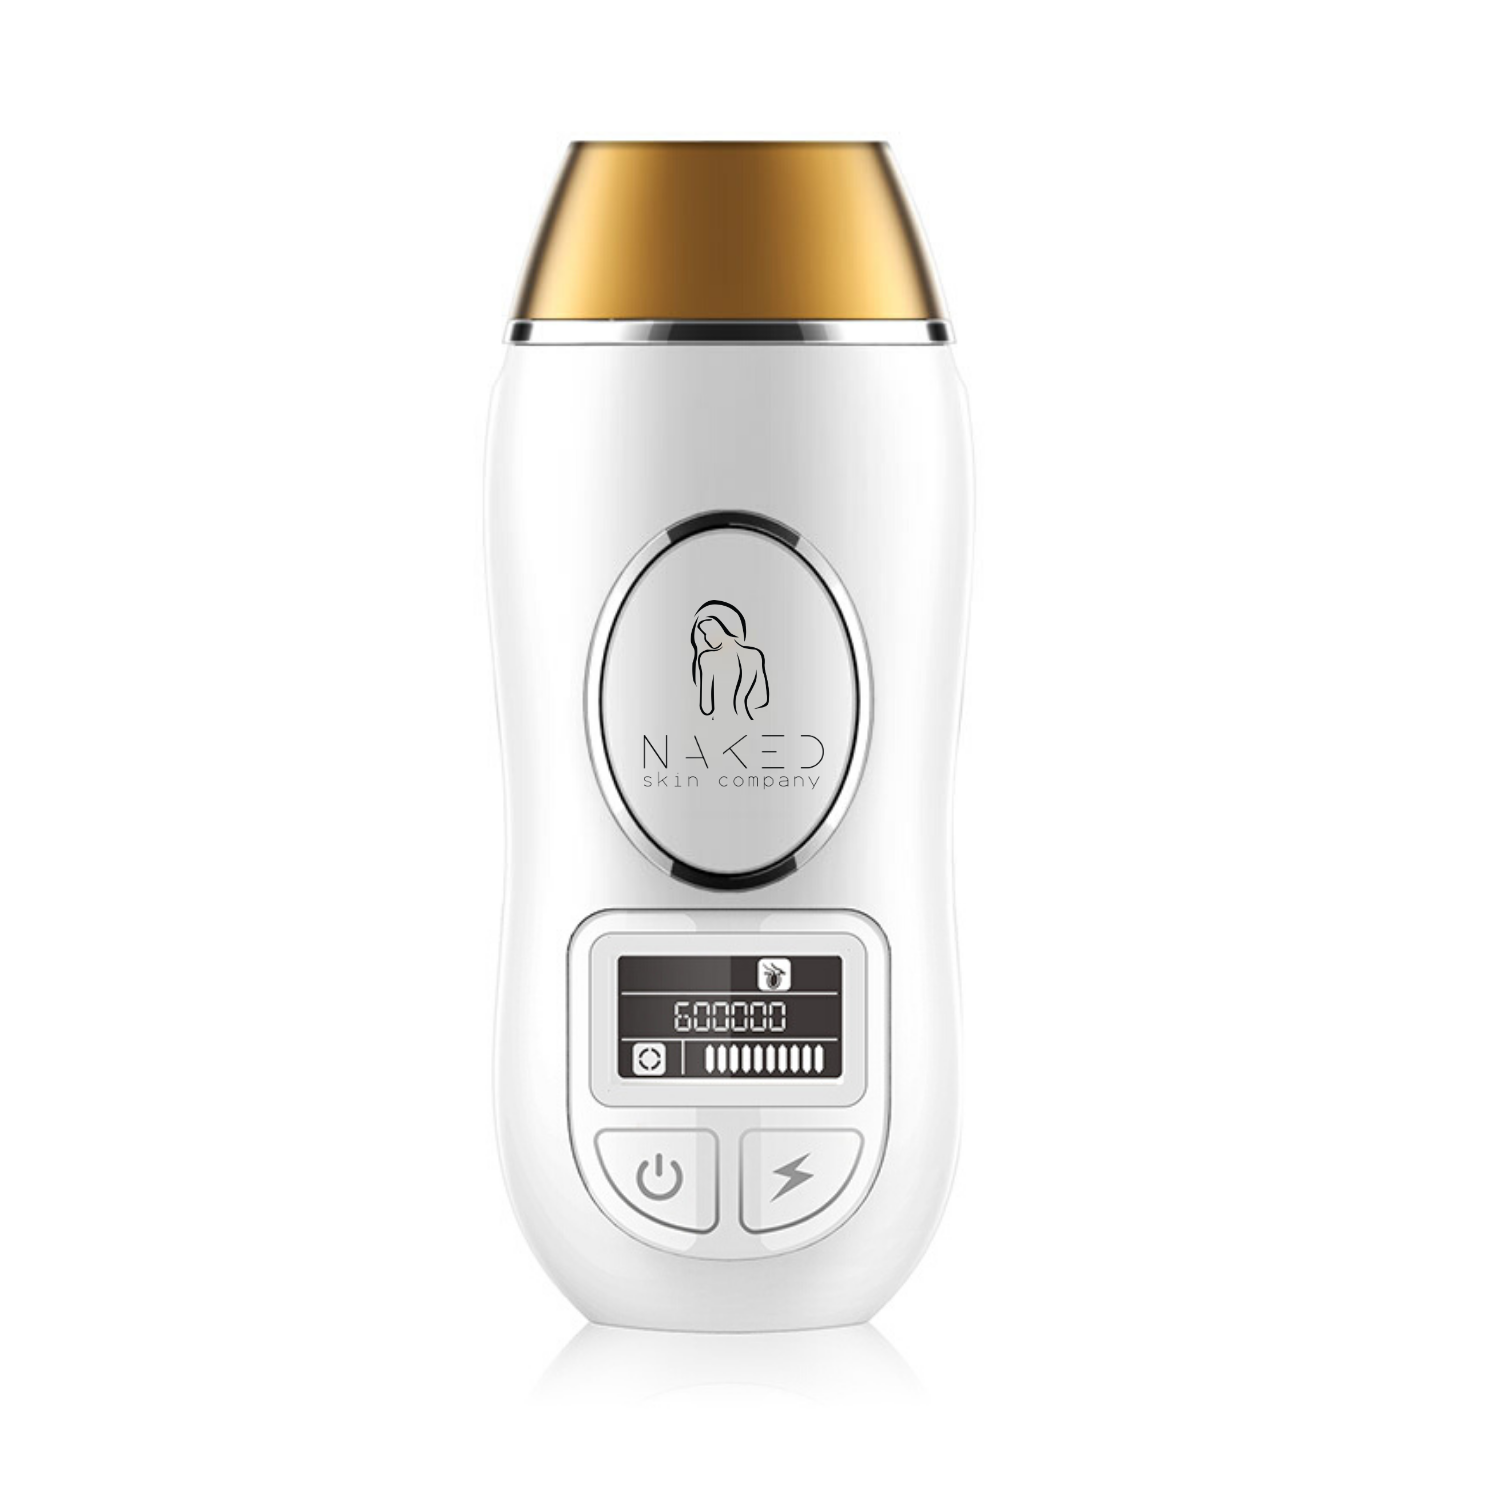 The Apollo IPL - Hair Removal System